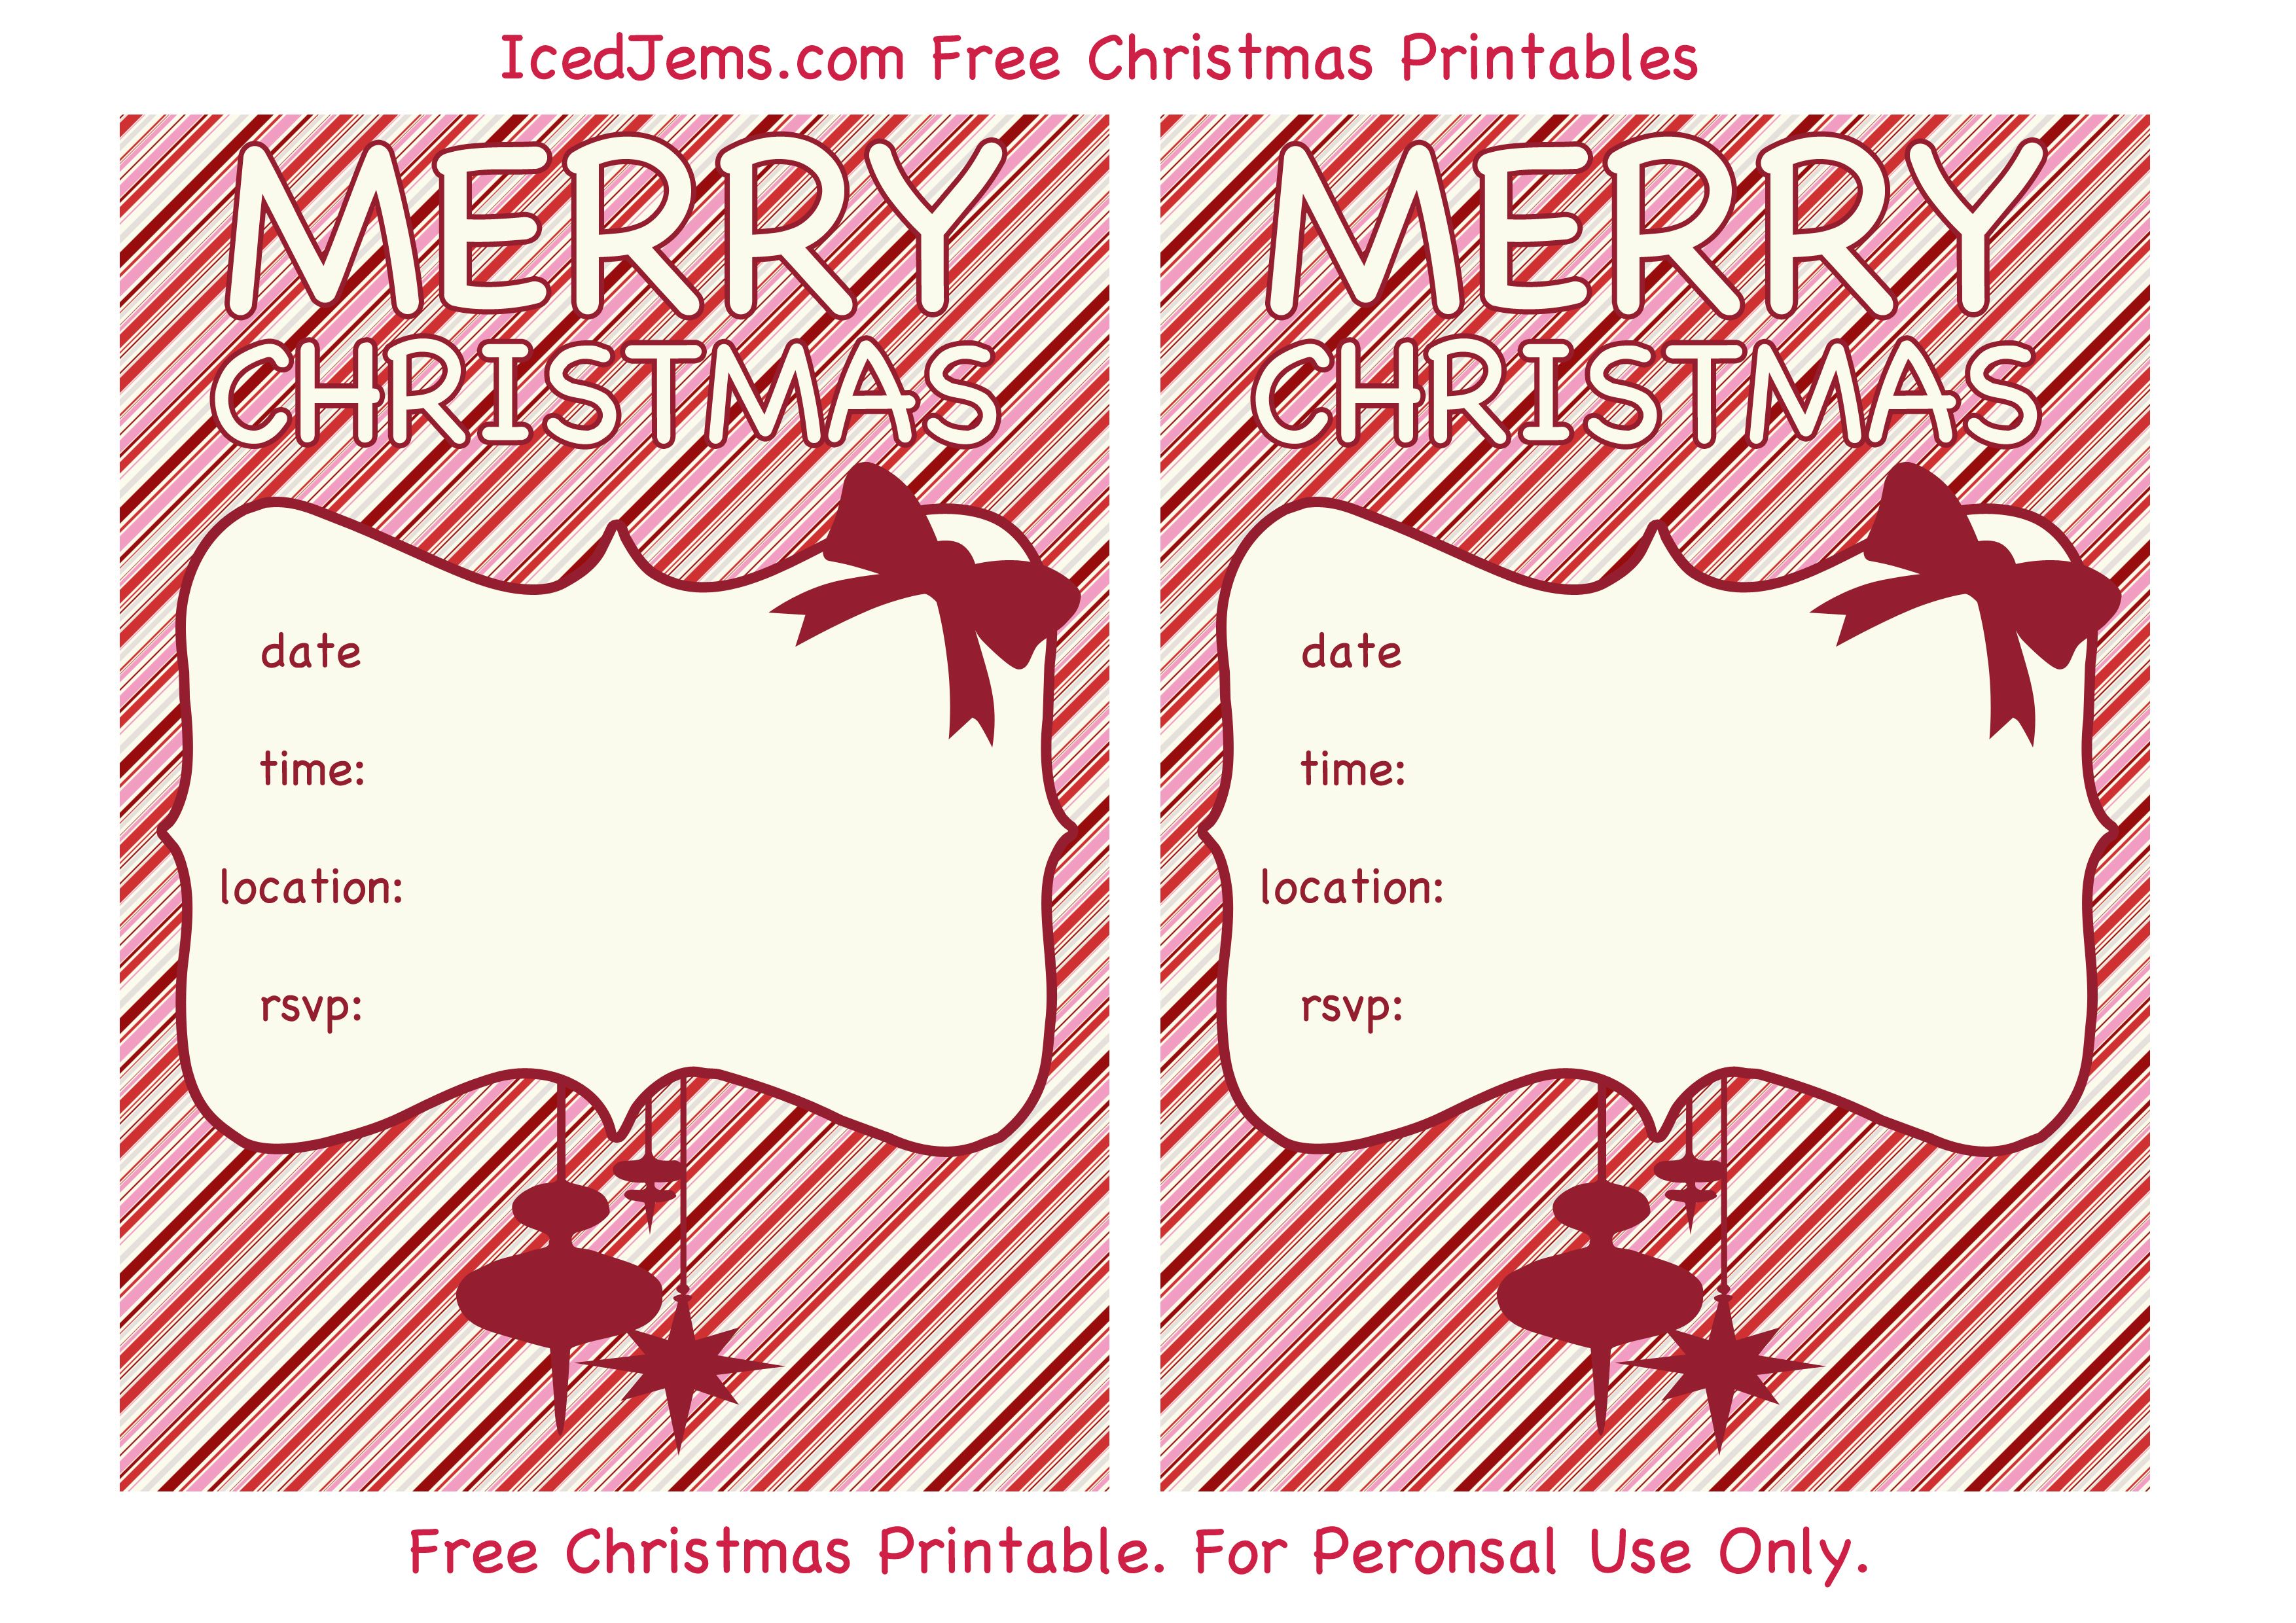 009 Christmas Party Invite Template Ideas Printable Invitations - Christmas Party Invitation Templates Free Printable